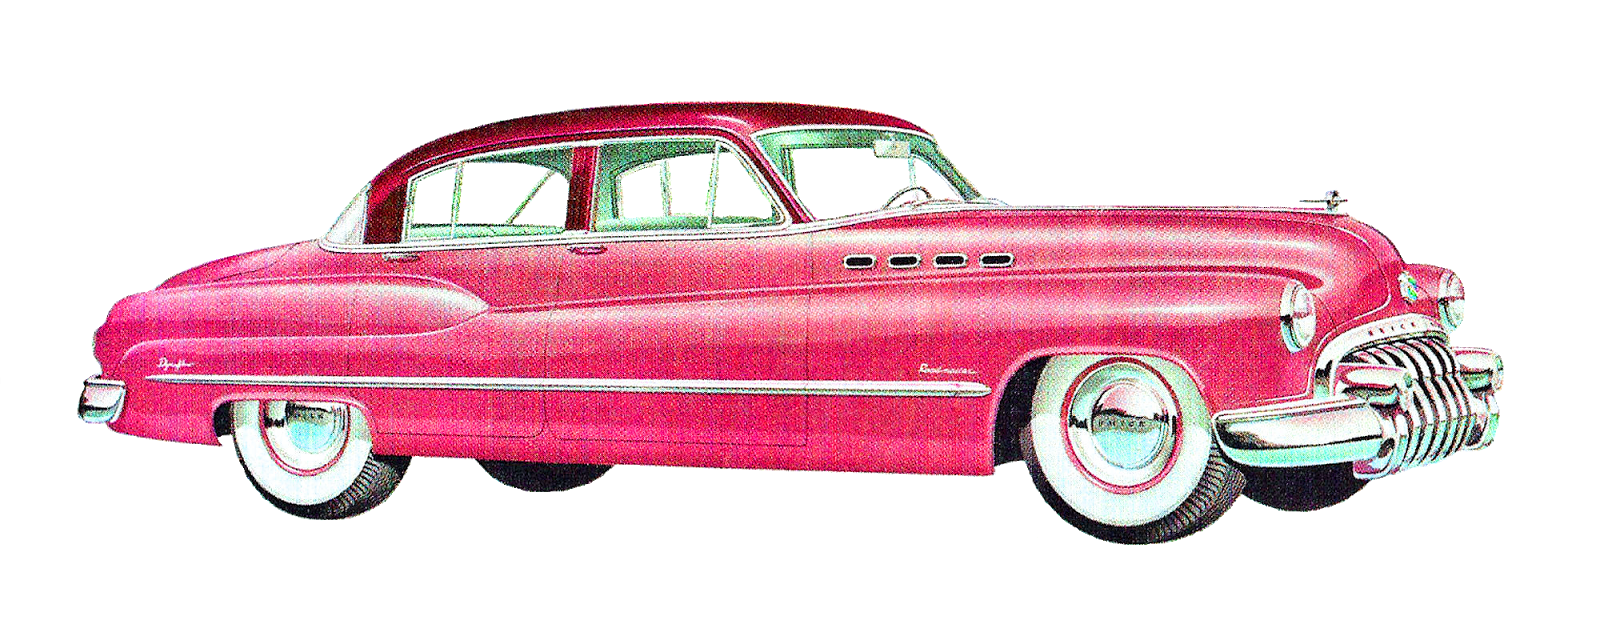 1600x624 Antique Images Vintage Old Car Artwork Illustrations Buick Dodge